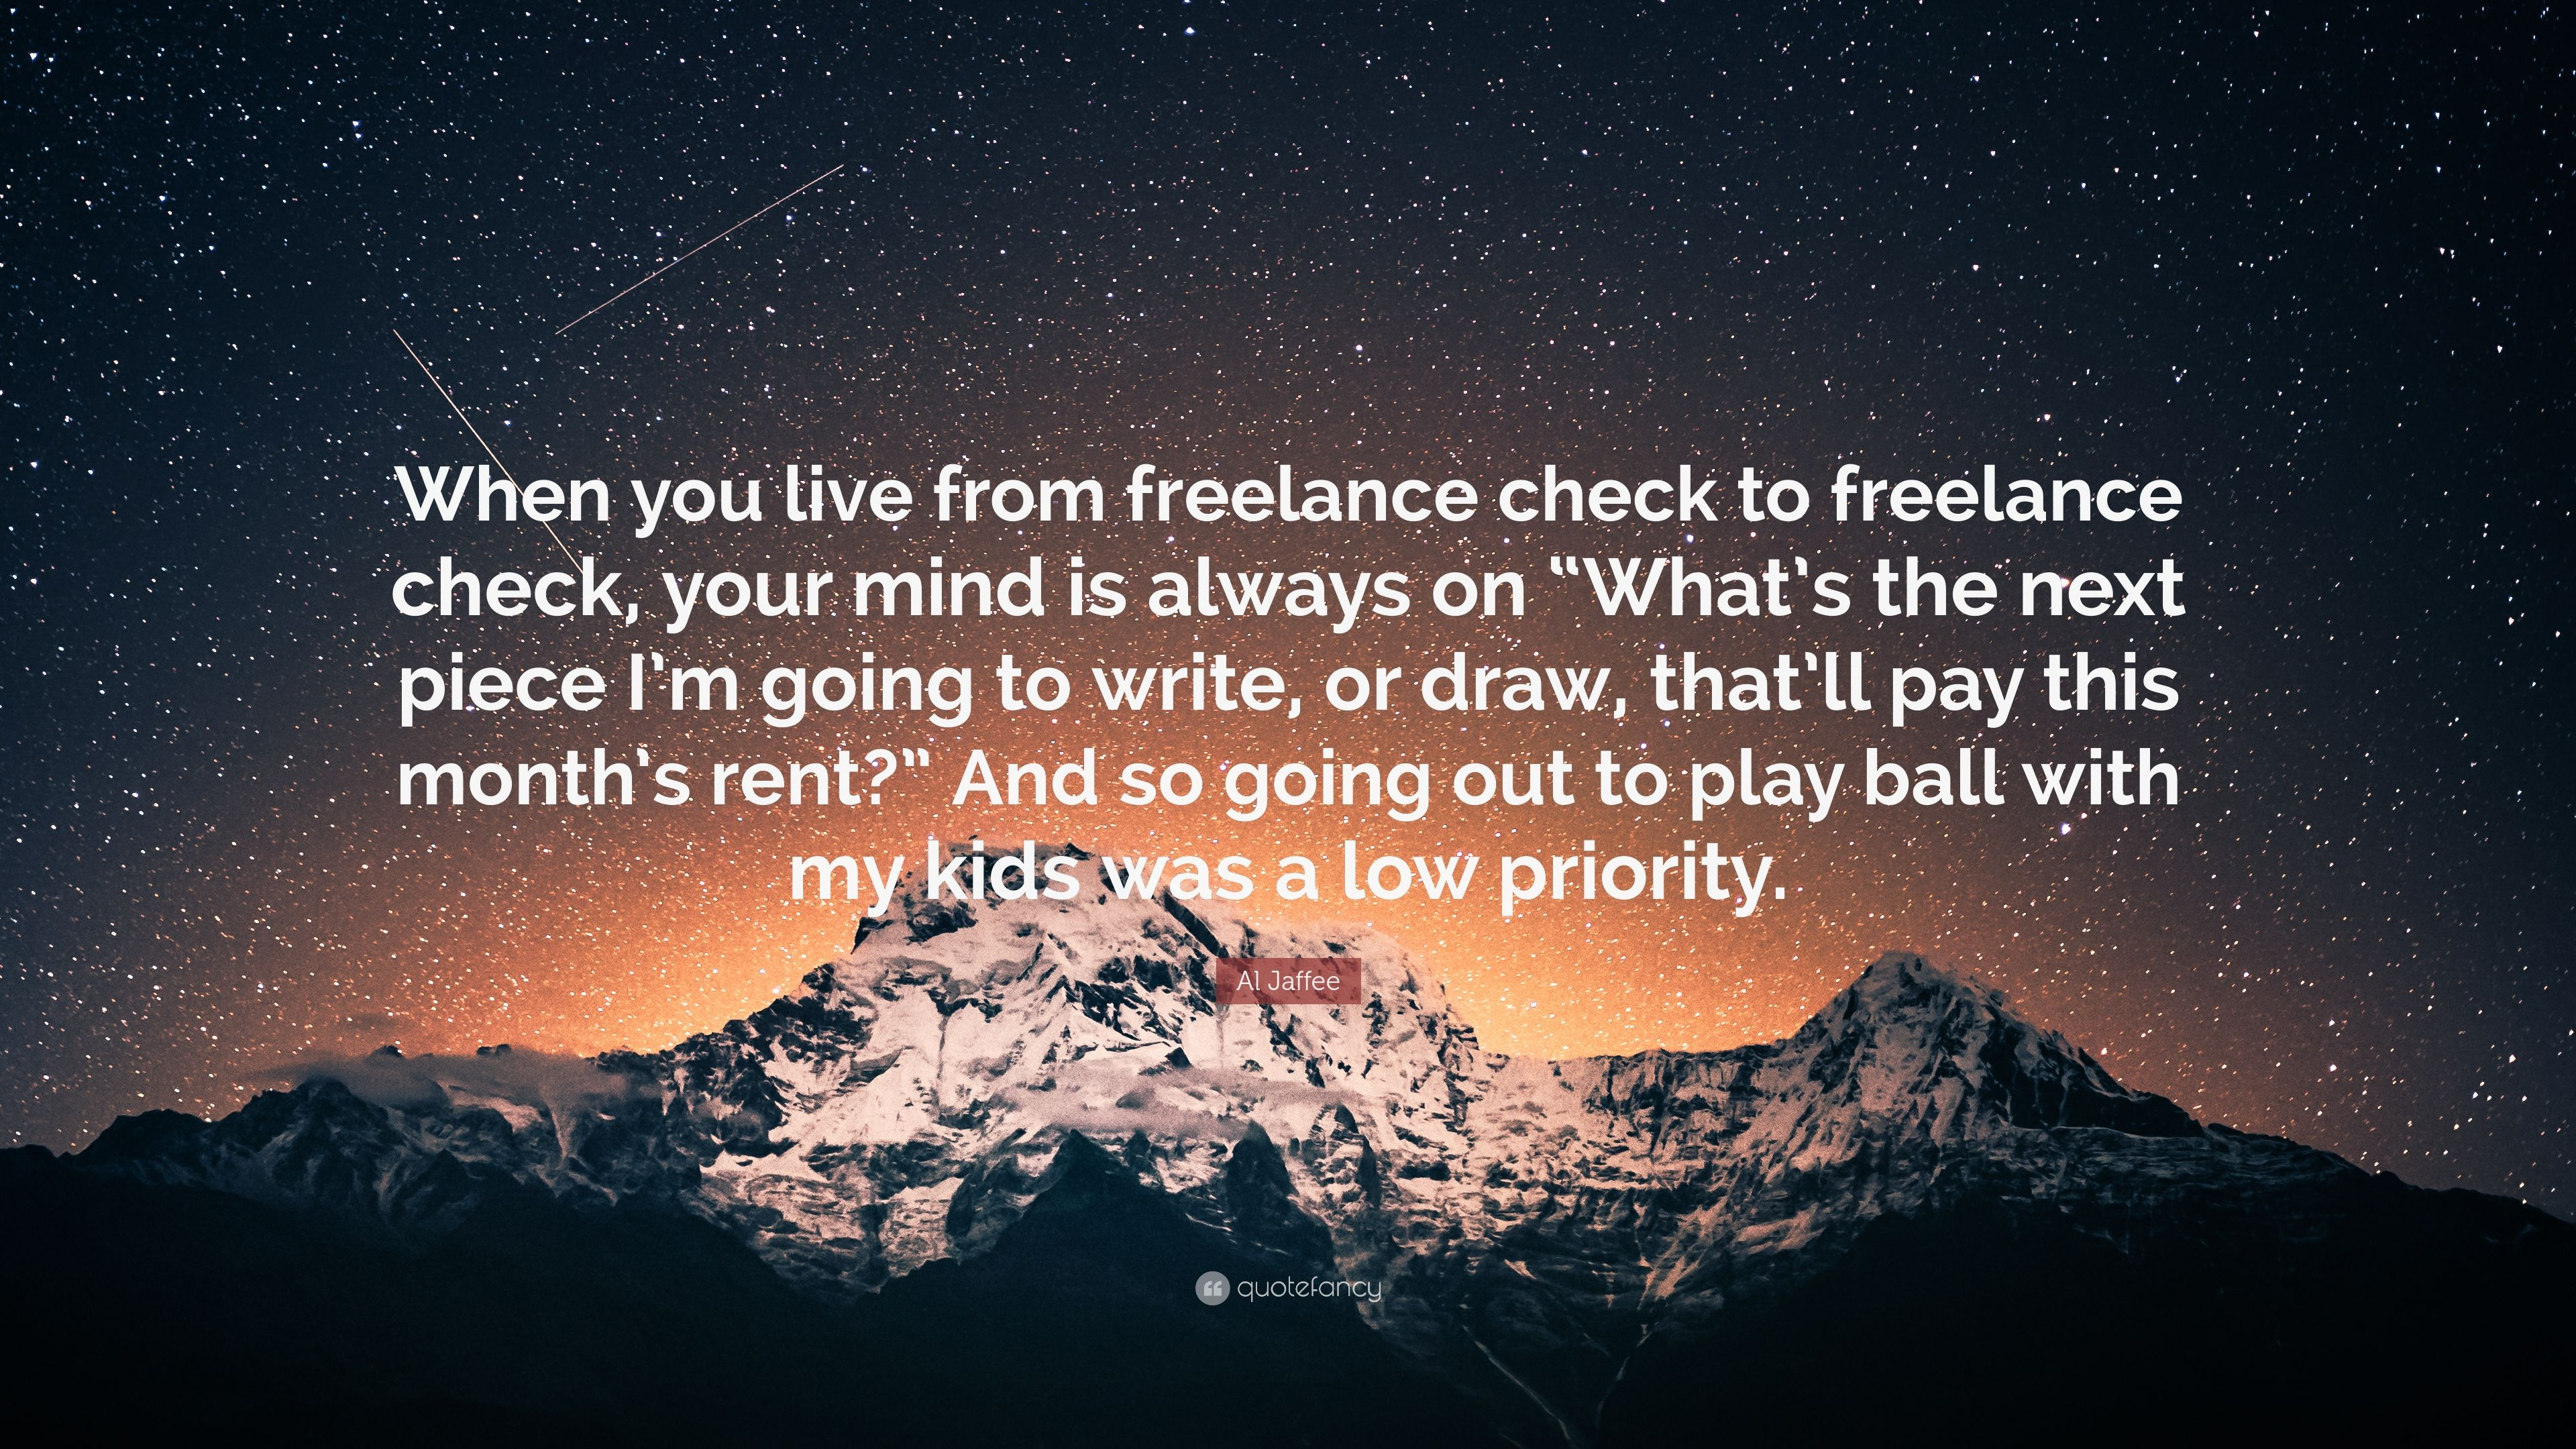 Al Jaffee Quote When You Live From Freelance Check To Freelance Check Your Mind Is Always On What S The Next Piece I M Going To Write 7 Wallpapers Quotefancy